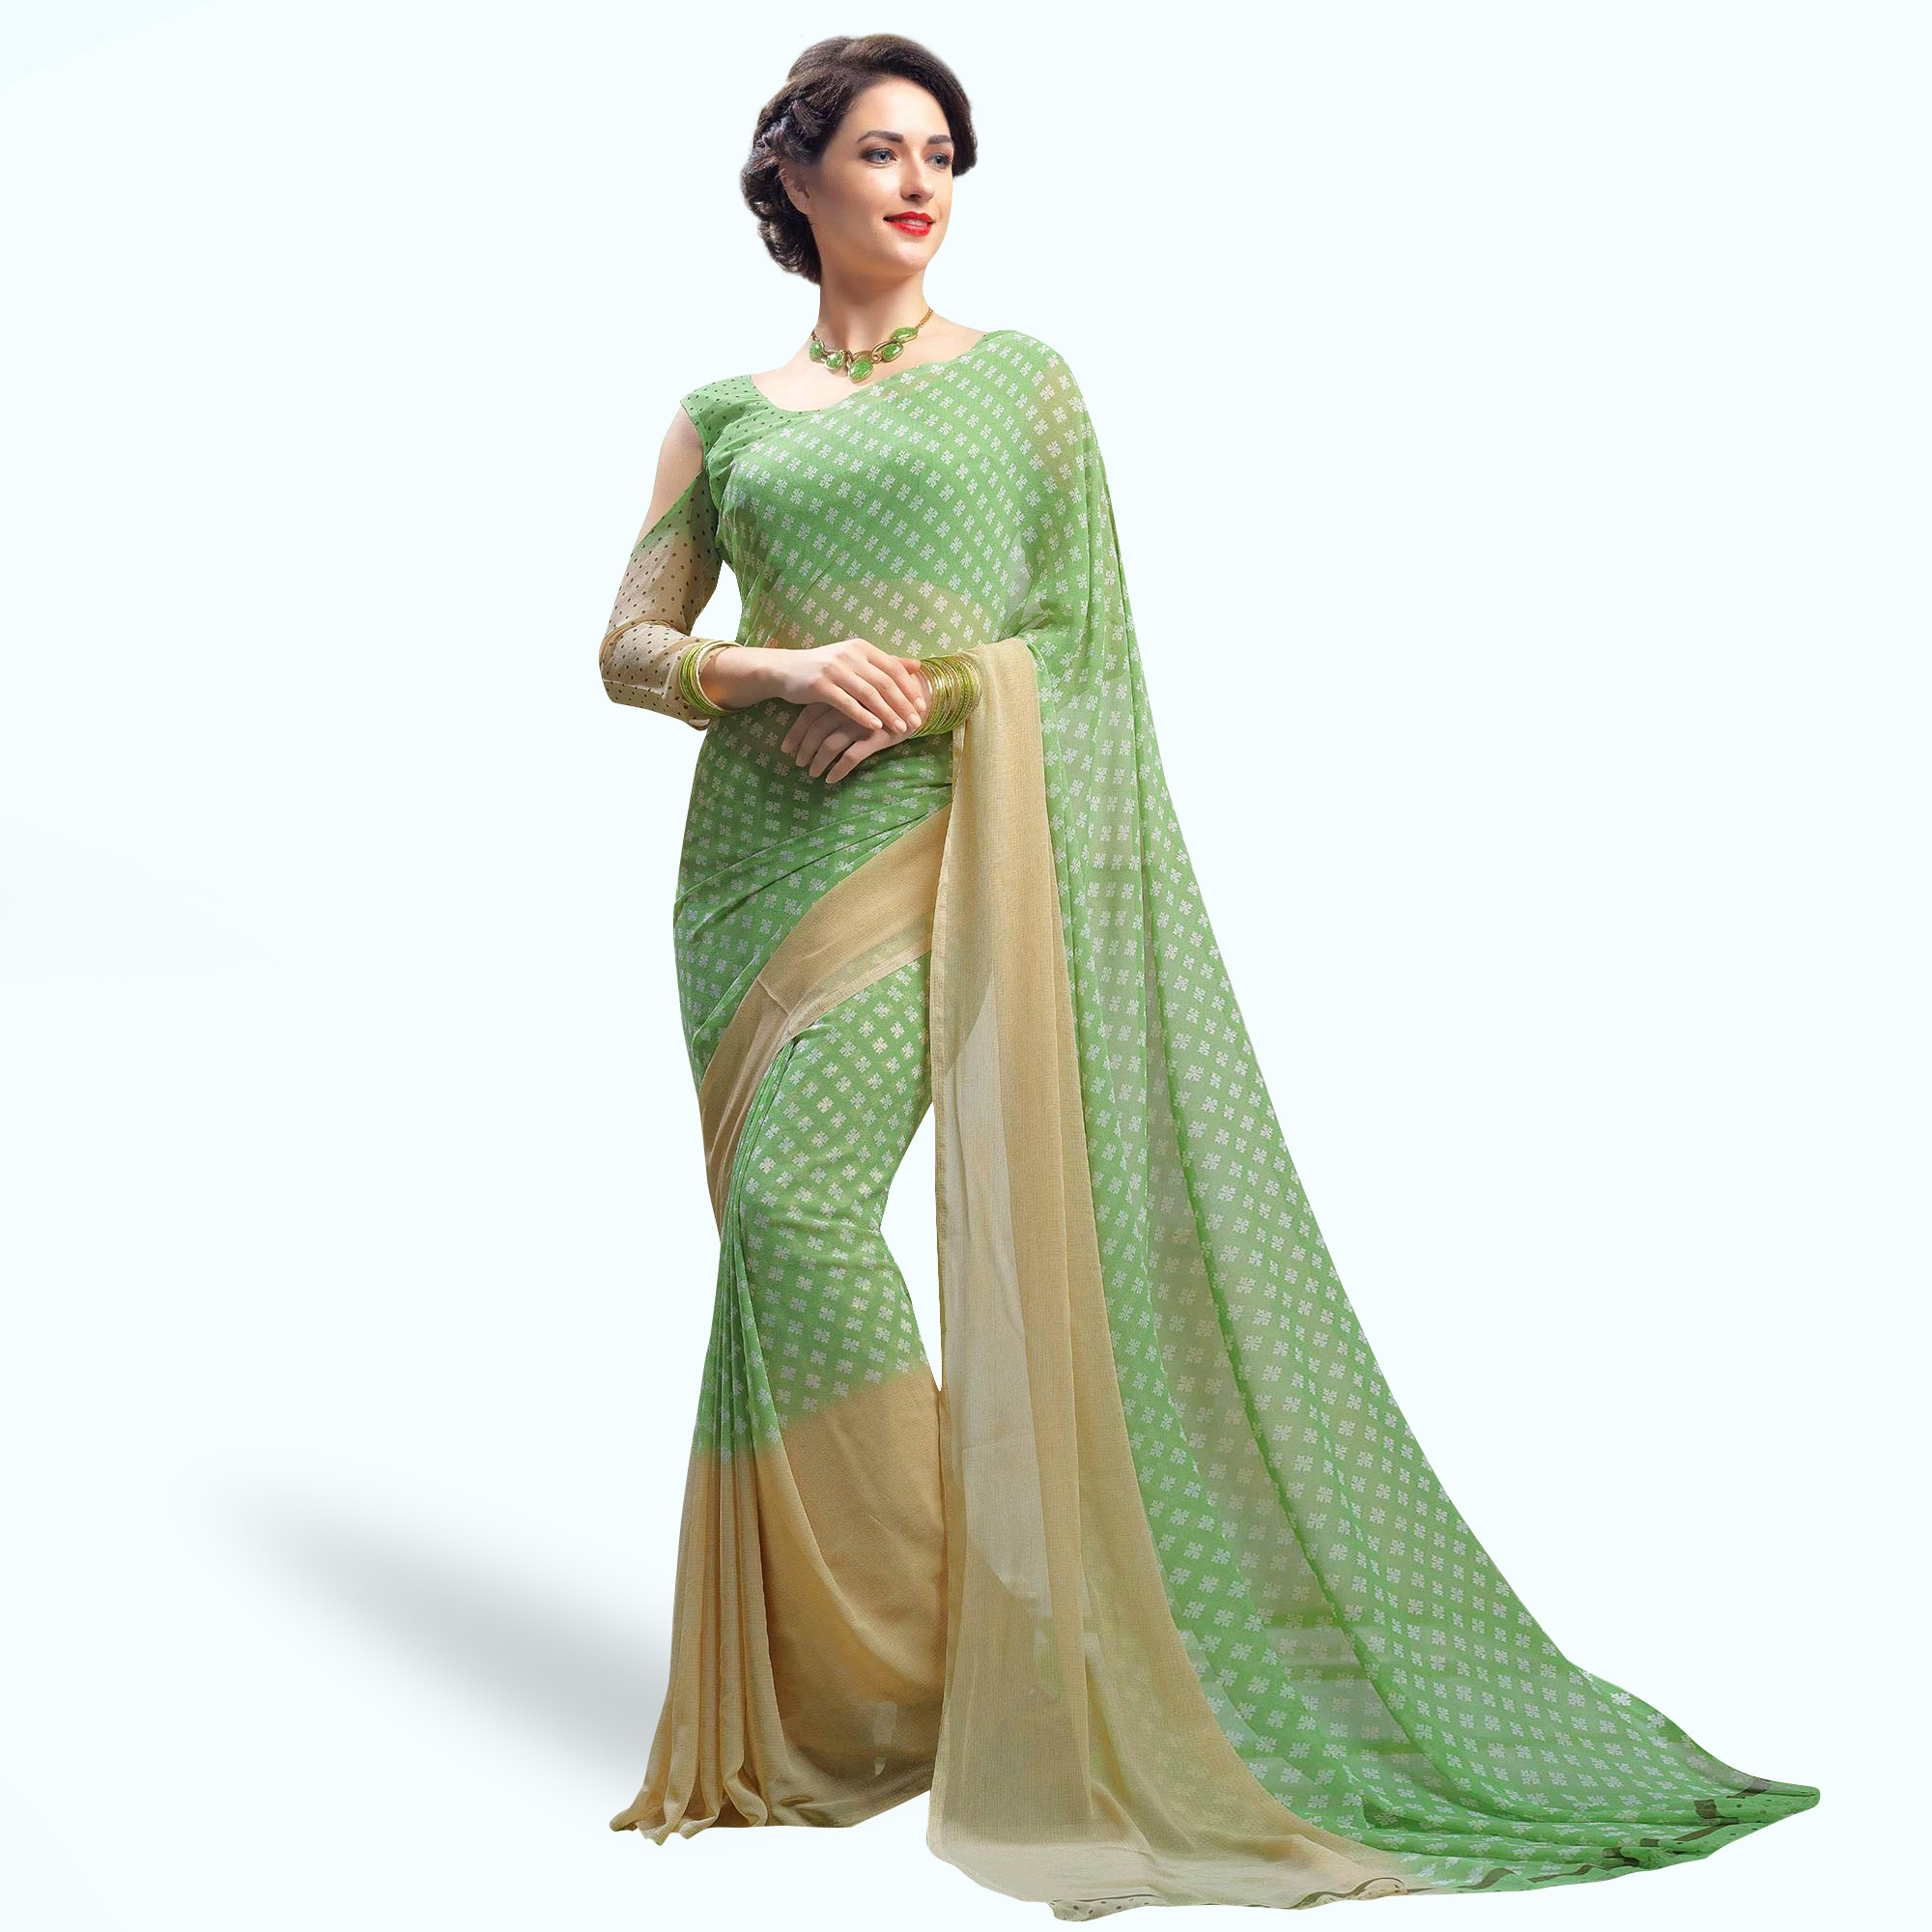 Radiant Green Colored Casual Printed Faux Georgette Saree